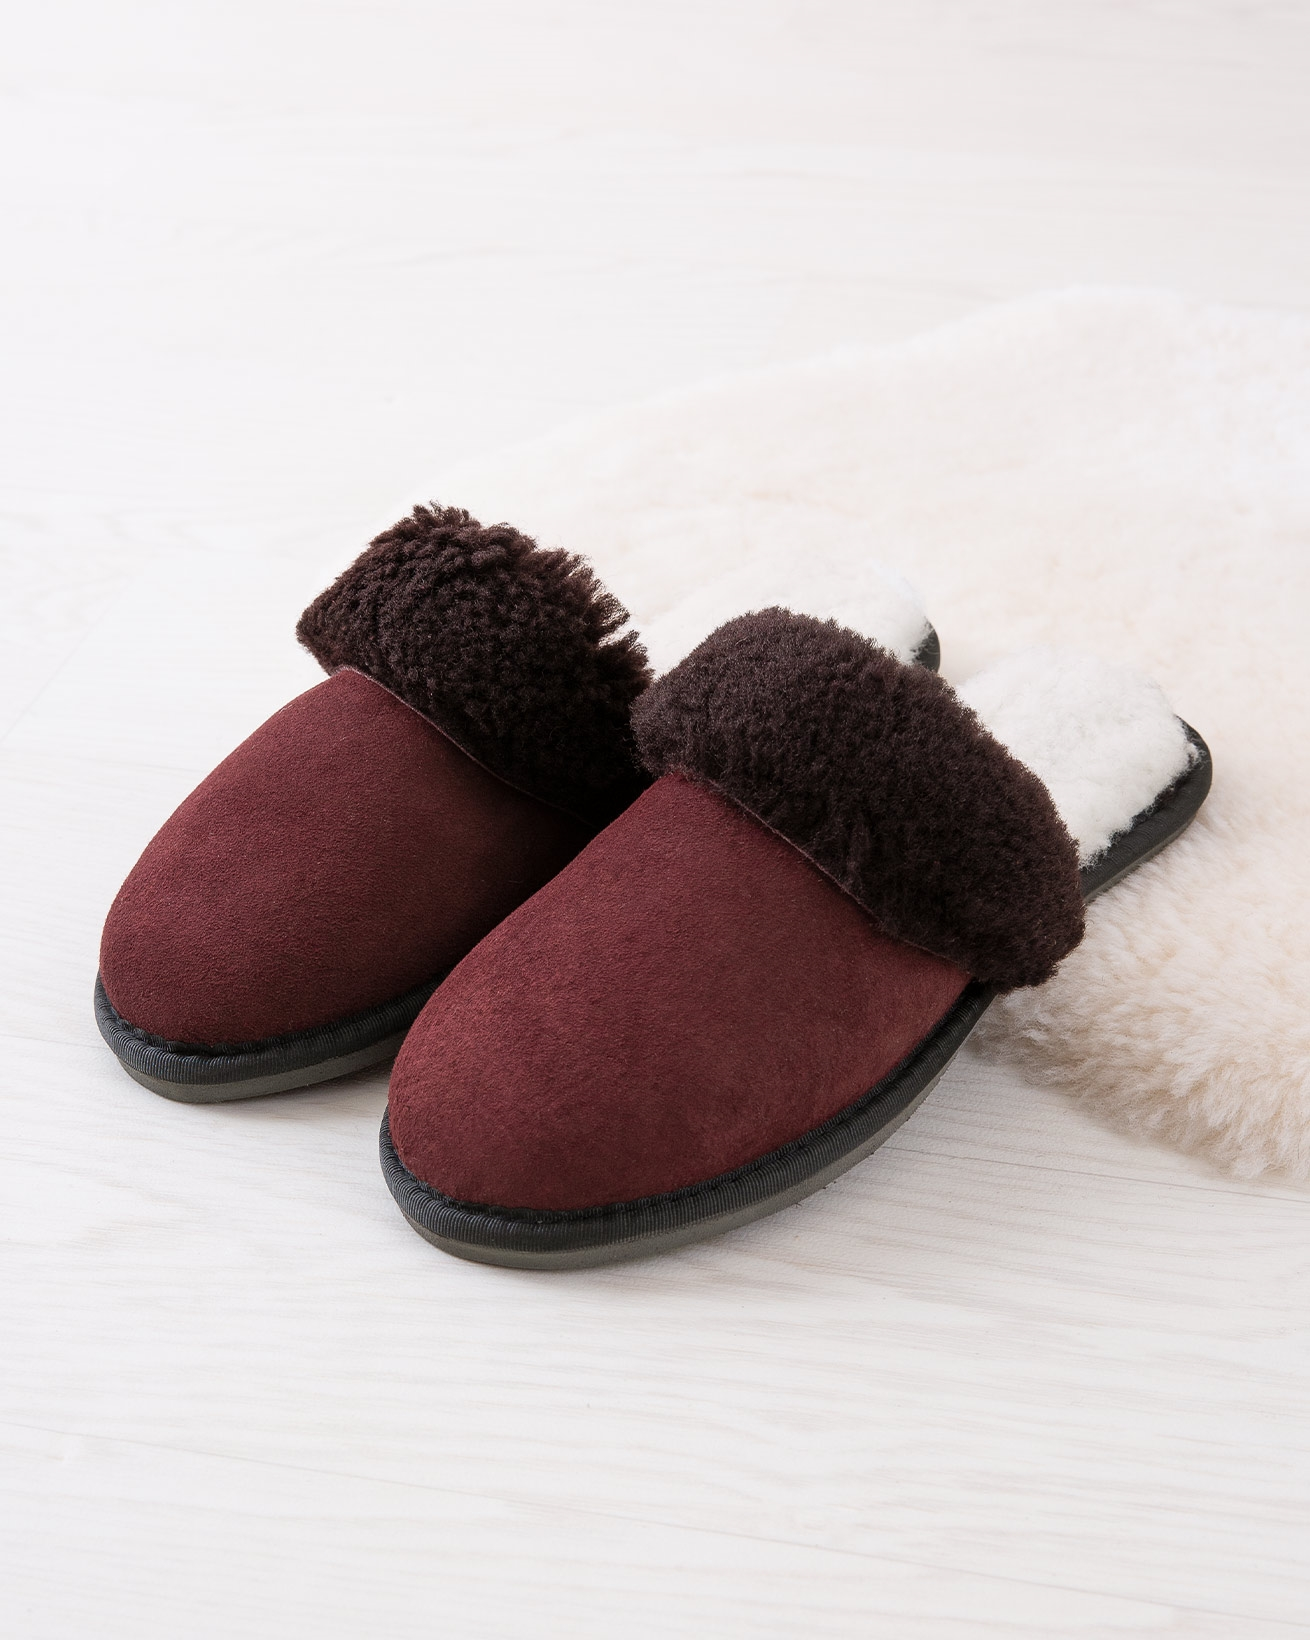 6786_ladies-turnback-mules_claret_lifestyle2_lfs.jpg